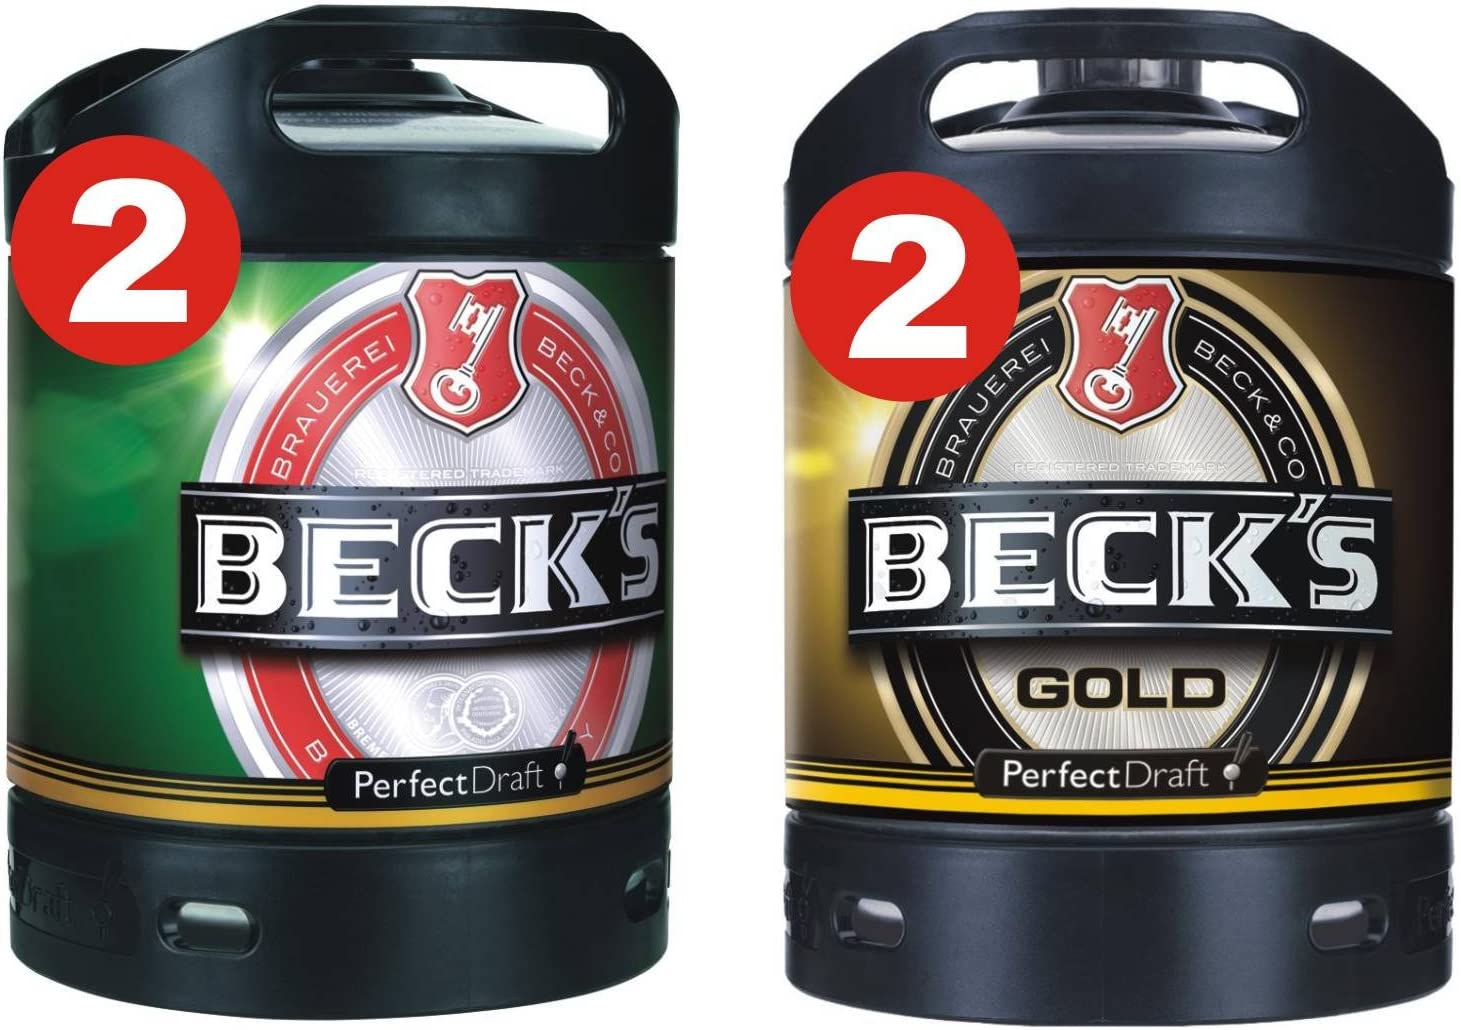 2 x Becks Pils + 2 x Becks Oro Perfect Draft 6 litros baril 4,9% vol.